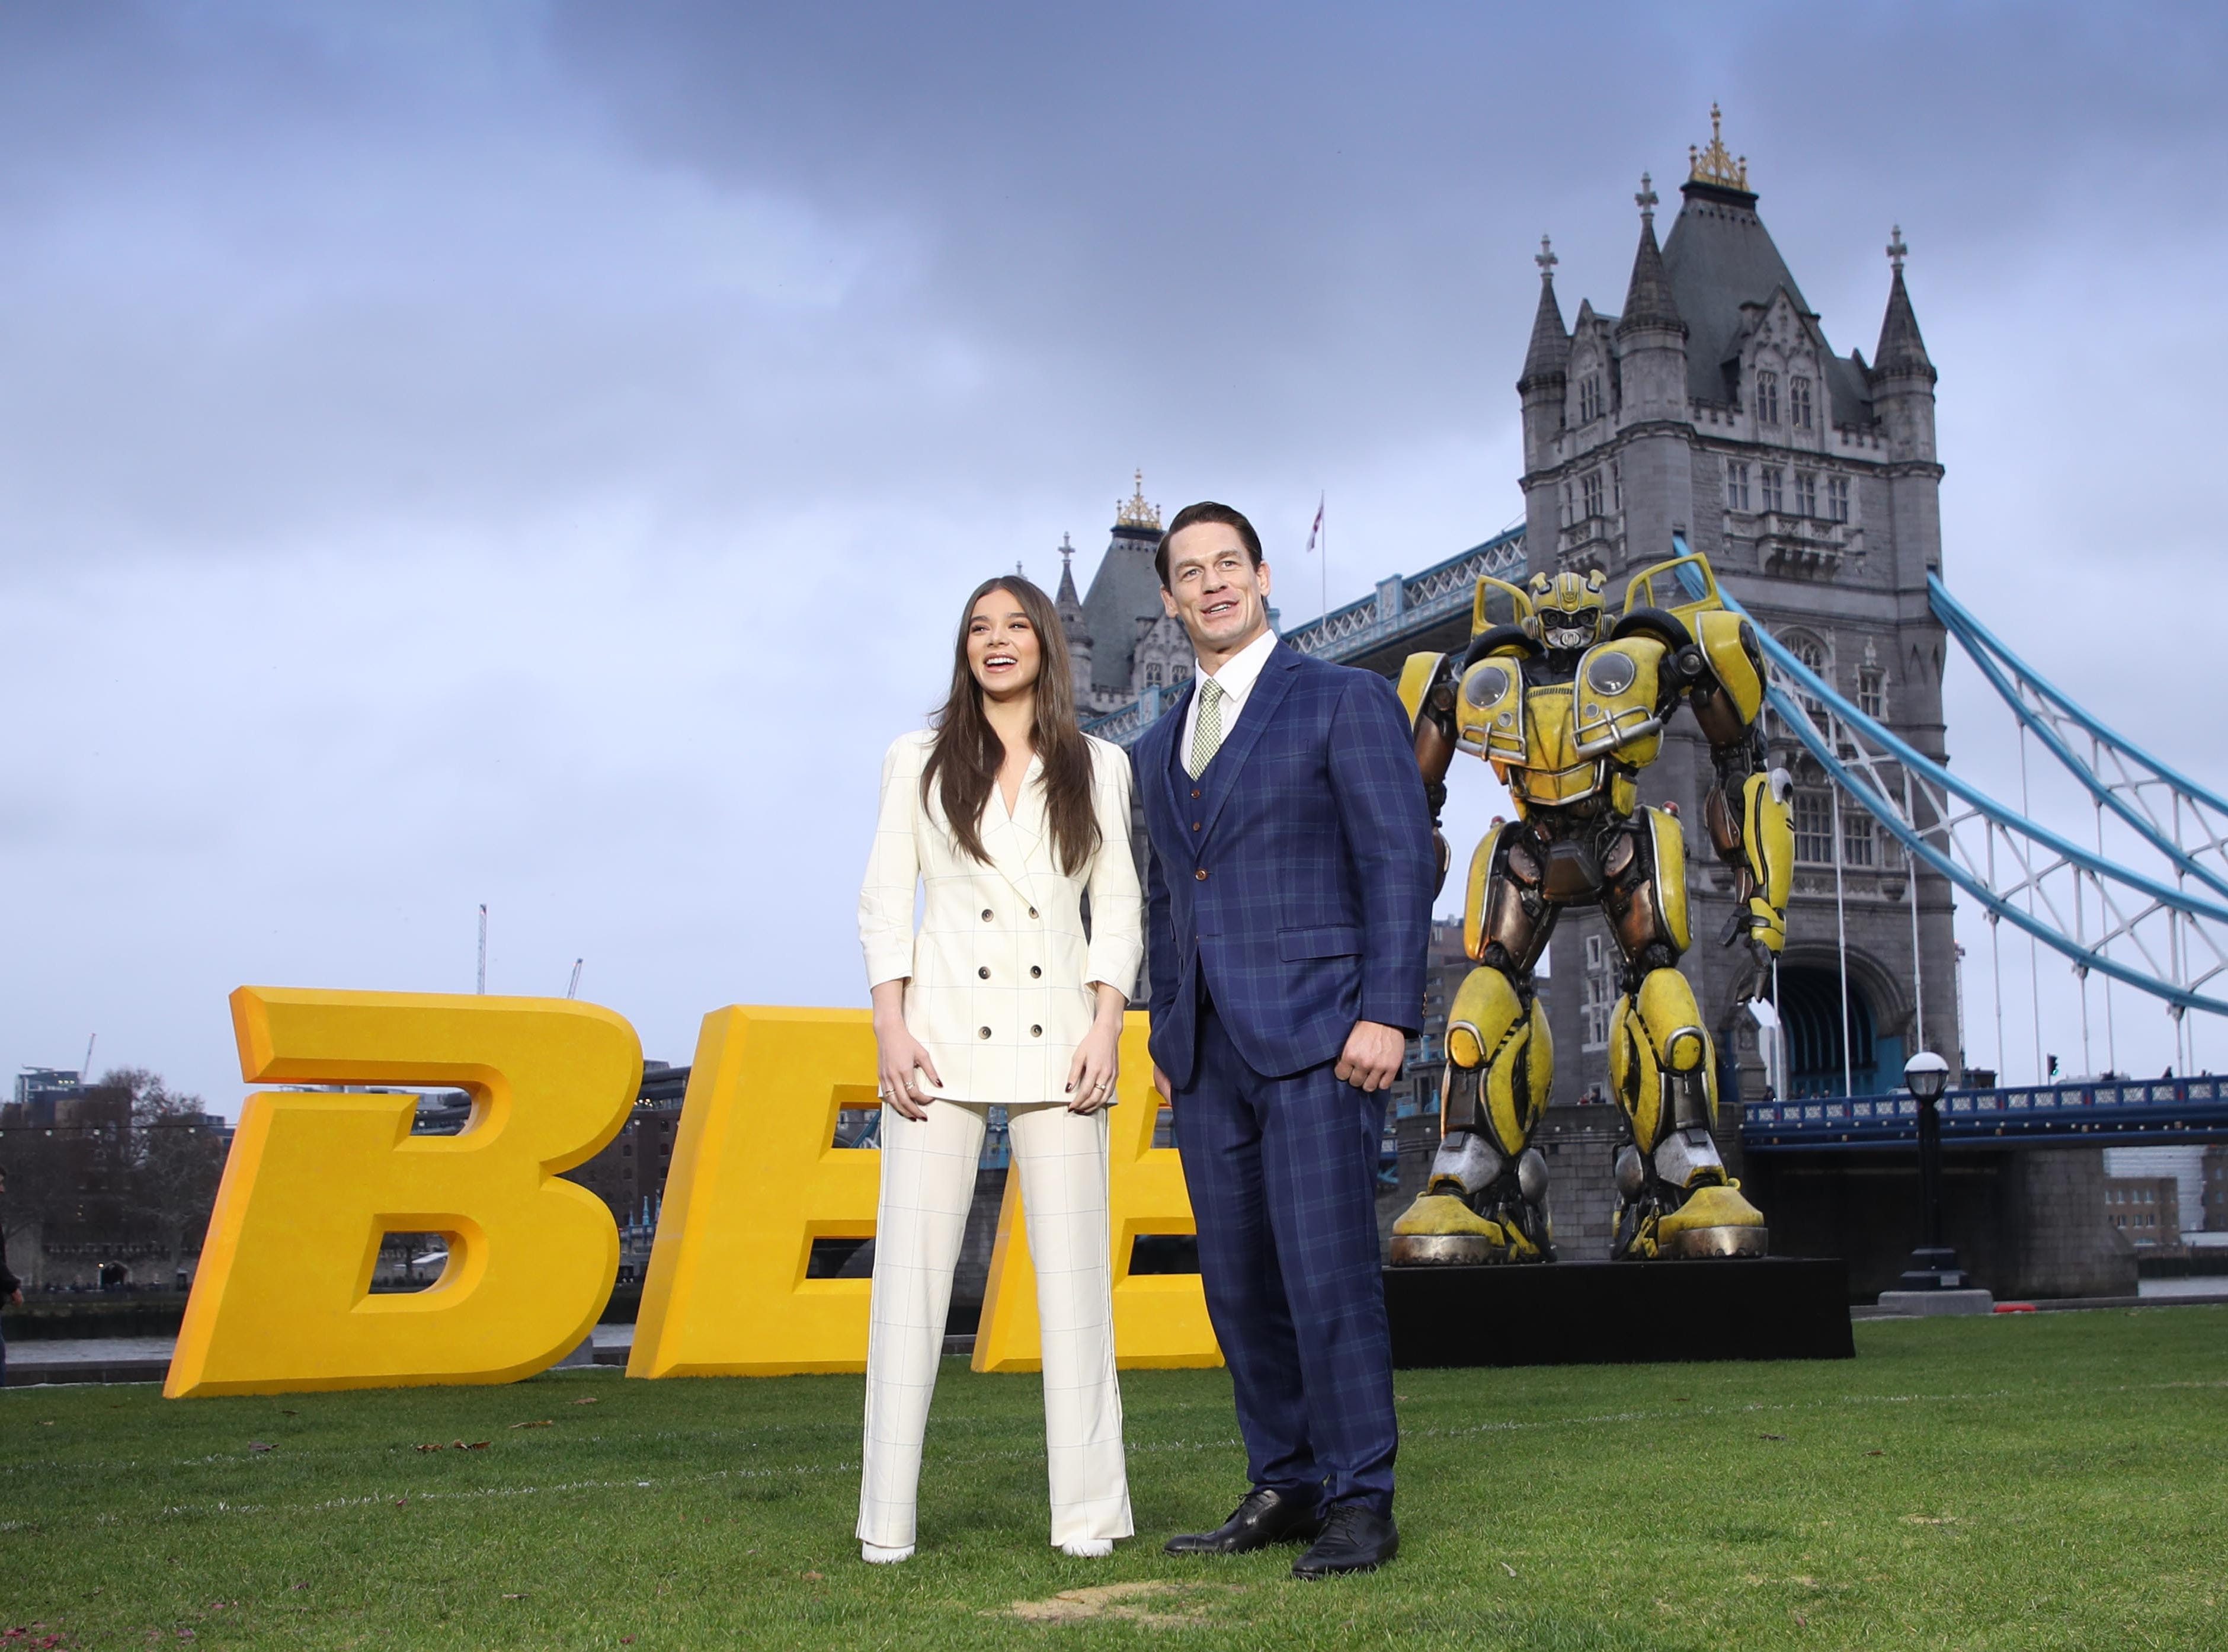 """LONDON, ENGLAND - DECEMBER 05: Hailee Steinfeld and John Cena attends a photocall for """"Bumblebee"""" at Potters Field Park on December 05, 2018 in London, England. (Photo by Mike Marsland/Mike Marsland/WireImage) ORG XMIT: 775266917 ORIG FILE ID: 1077671672"""